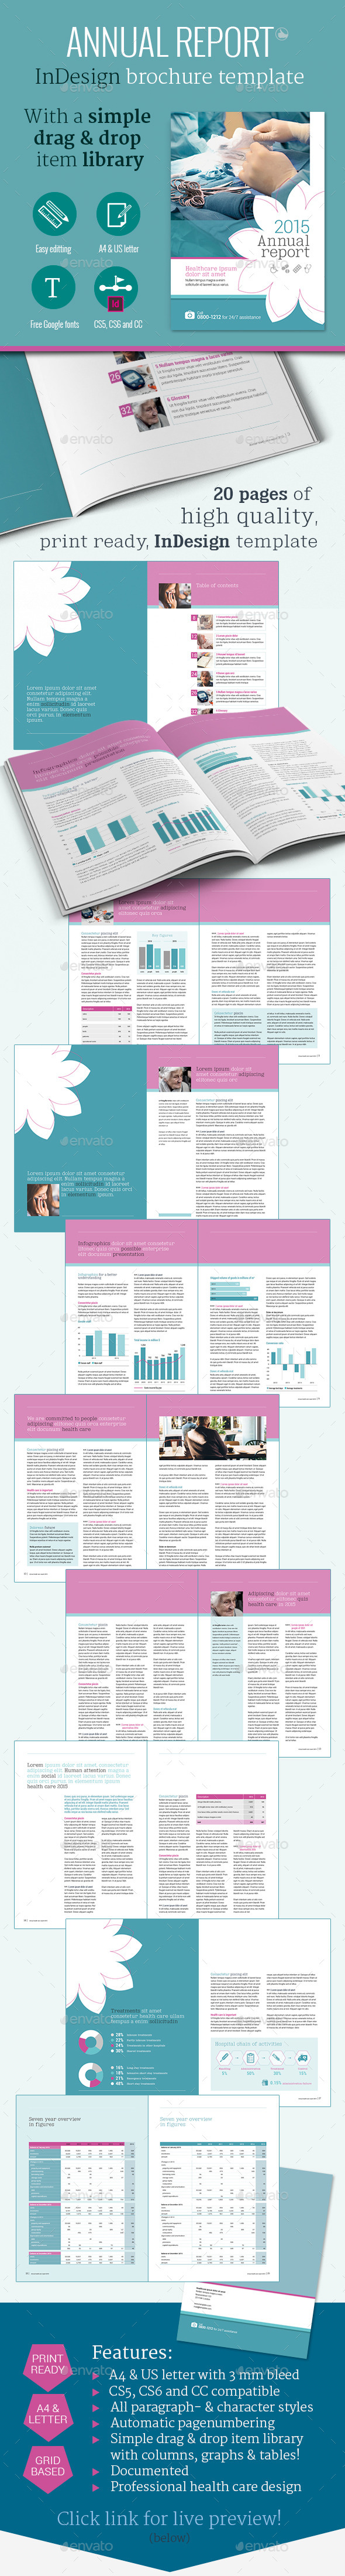 Health care annual report brochure template by for Healthcare brochure templates